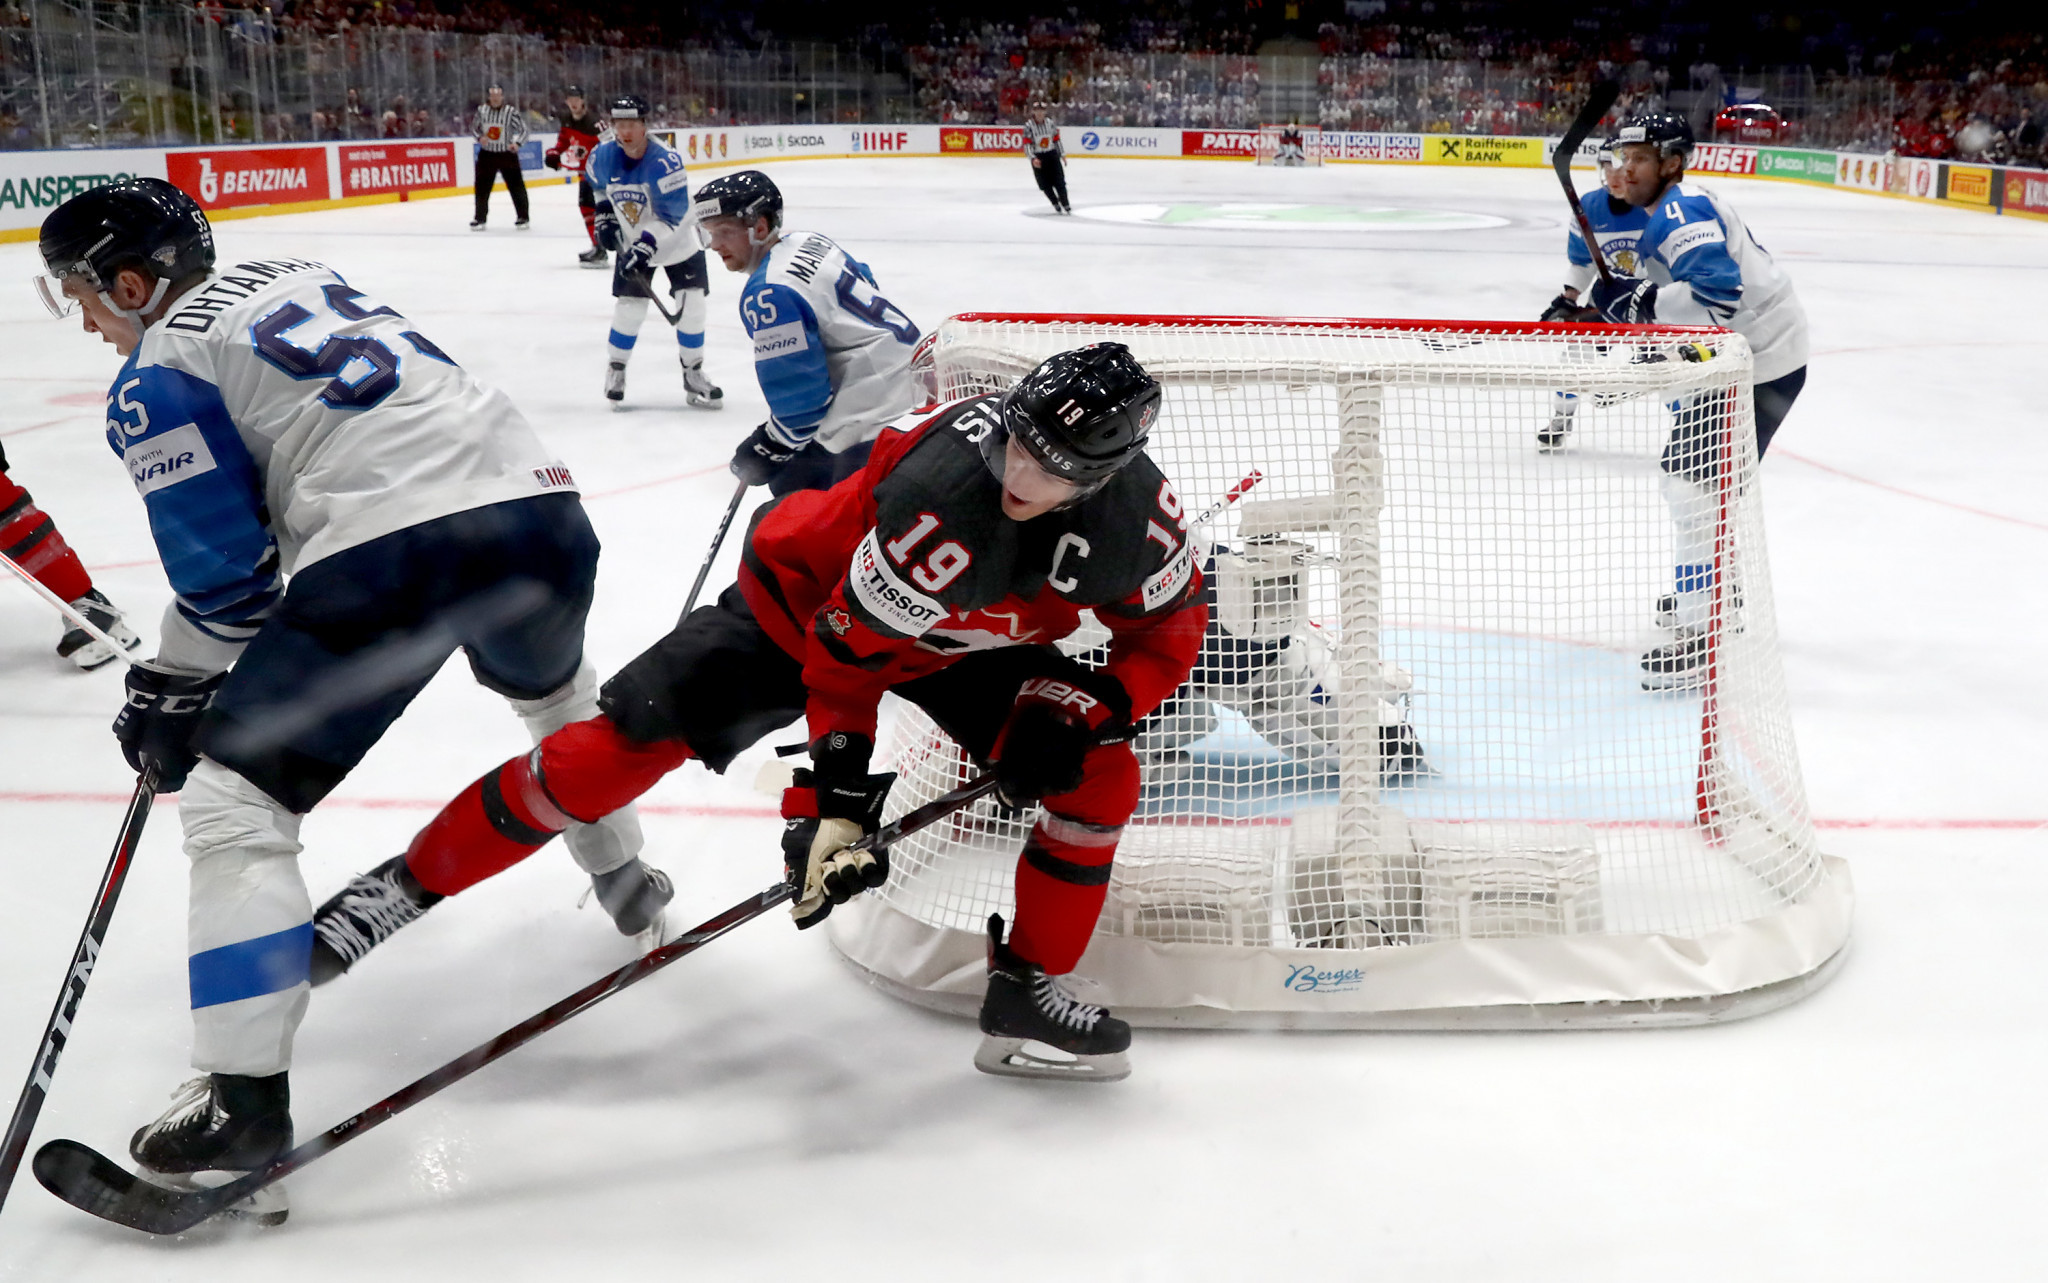 IIHF World Championship attracts combined TV audience of more than 1.6 billion